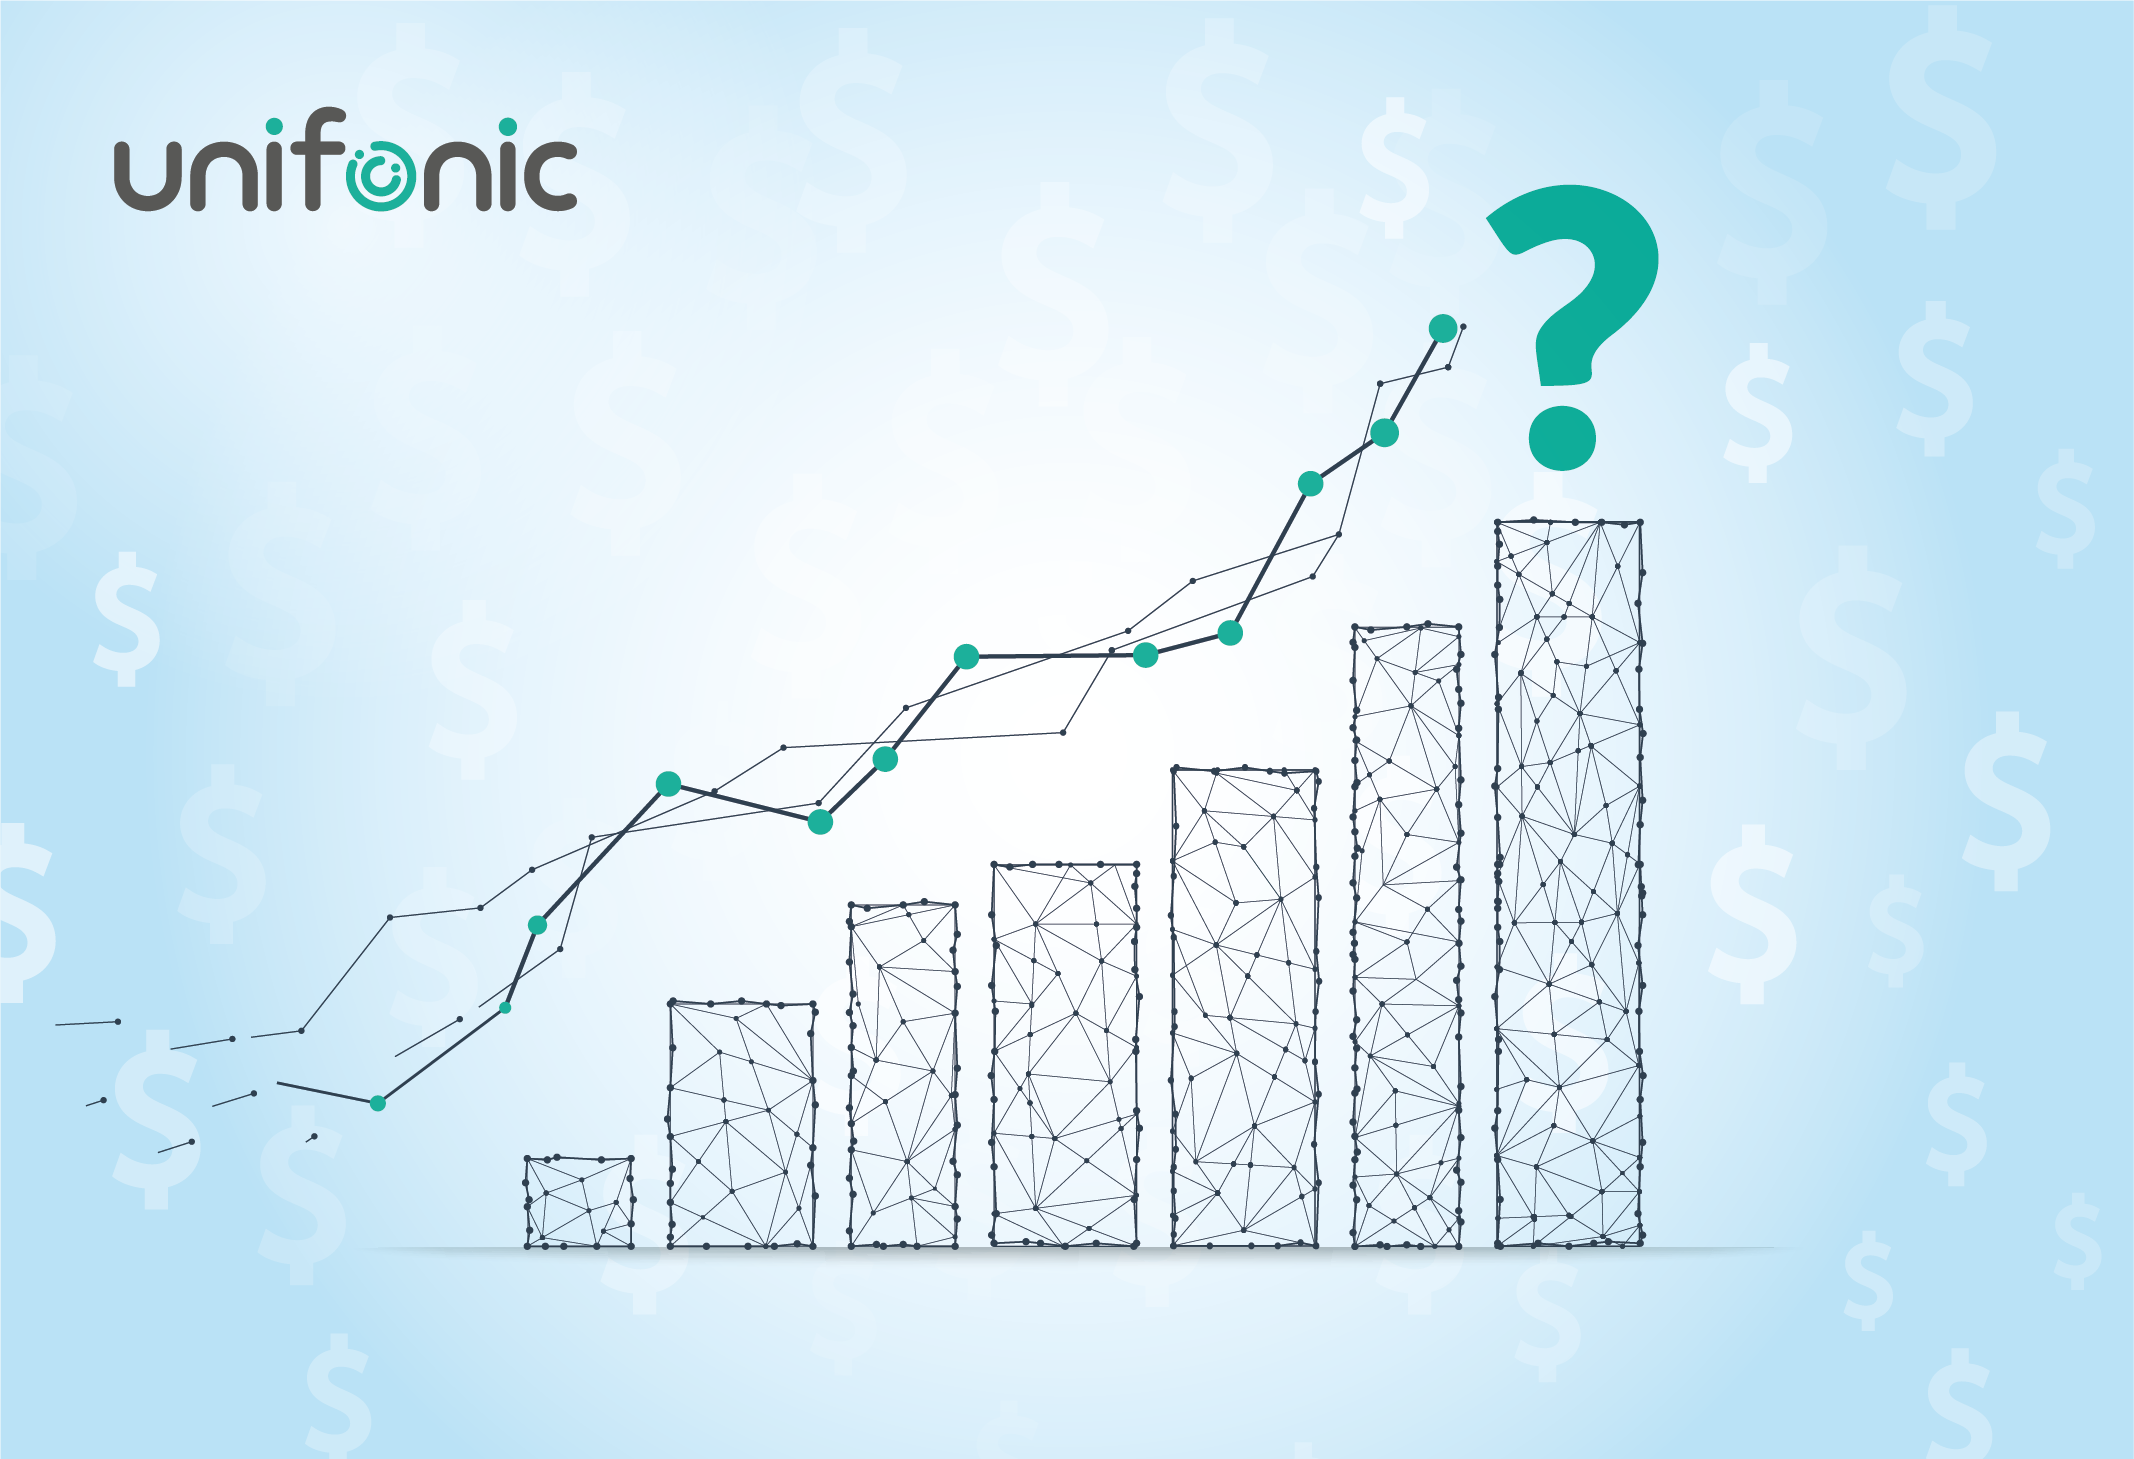 Why Unifonic earned the investment